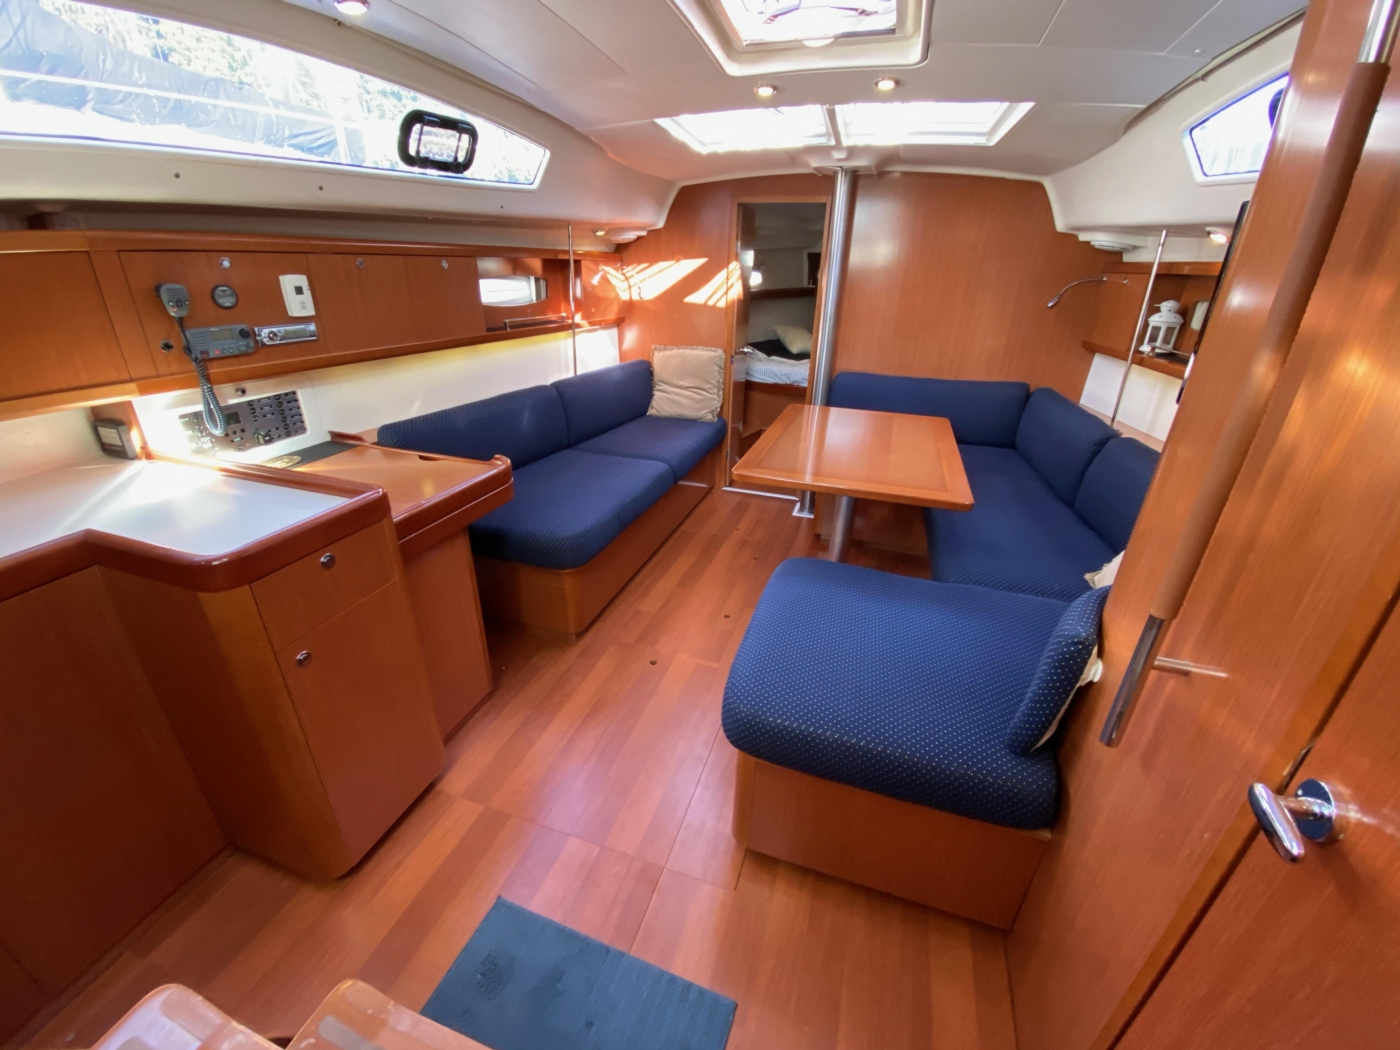 2010 Beneteau Oceanis 40, Galley and Salon